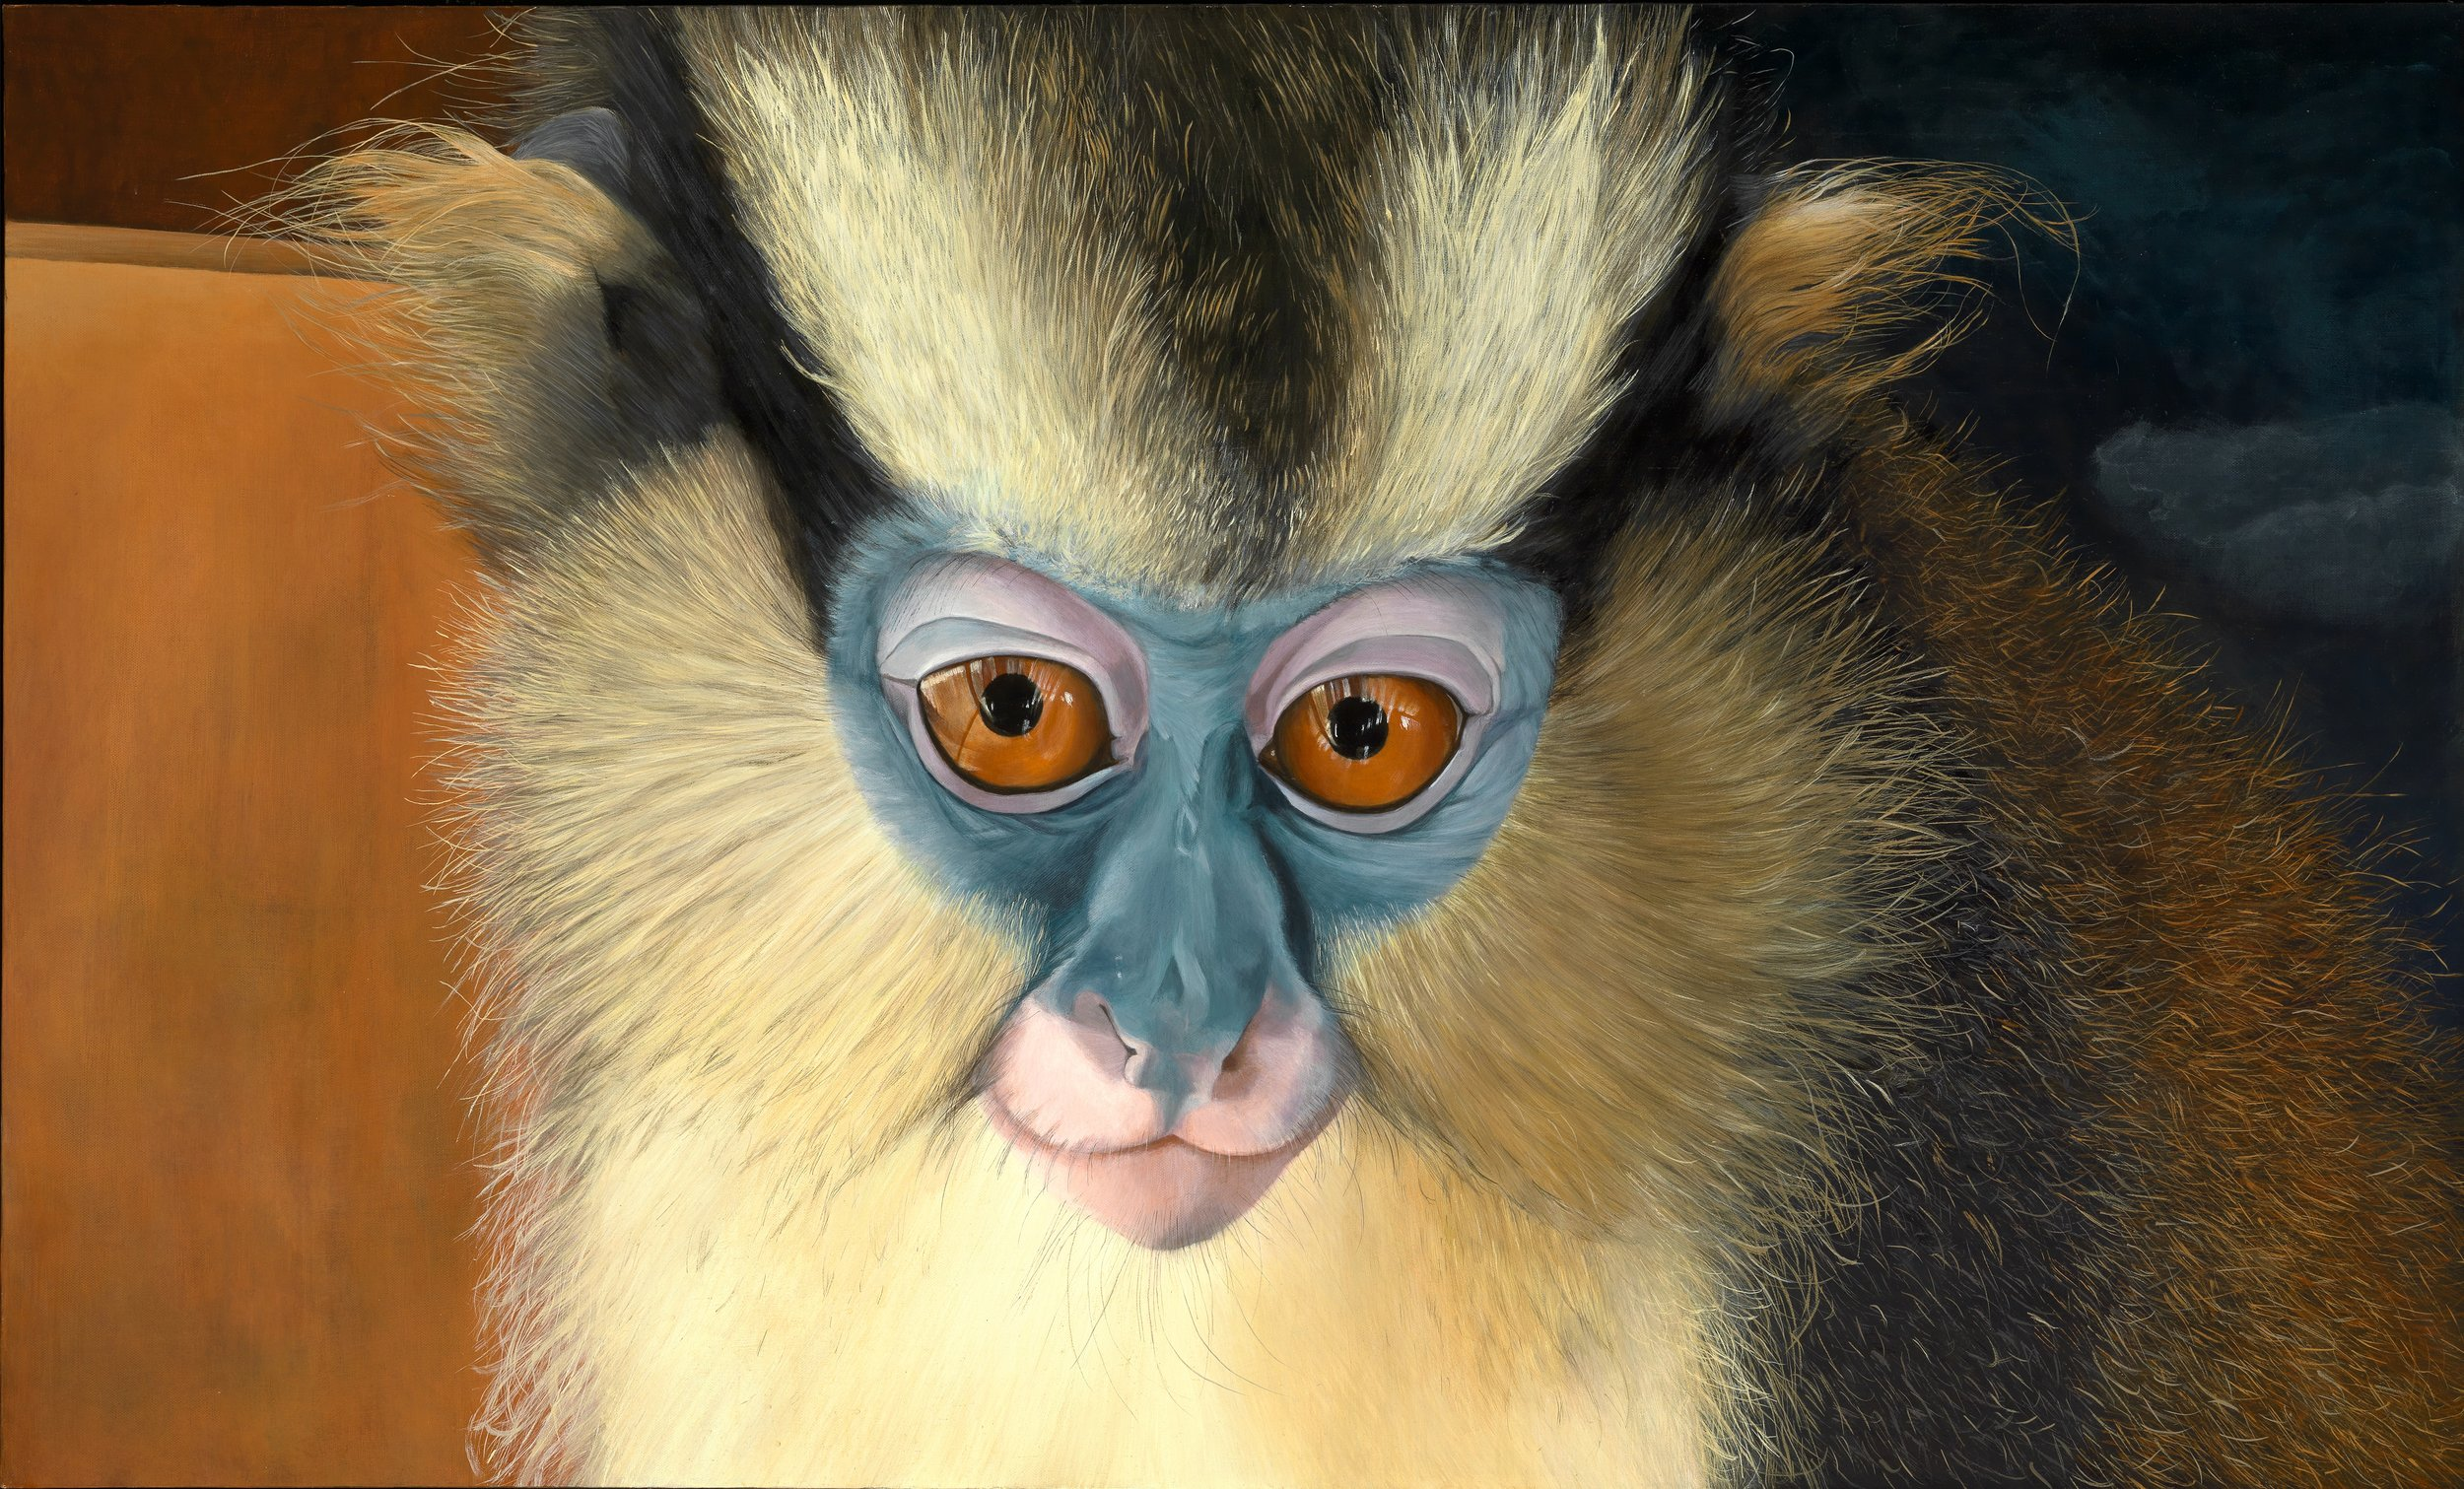 PORTRAIT OF YOUNG NUNU, A CROWNED GUENON, ACRYLIC ON CANVAS 36 X 60 BY ©ROBIN HUFFMAN